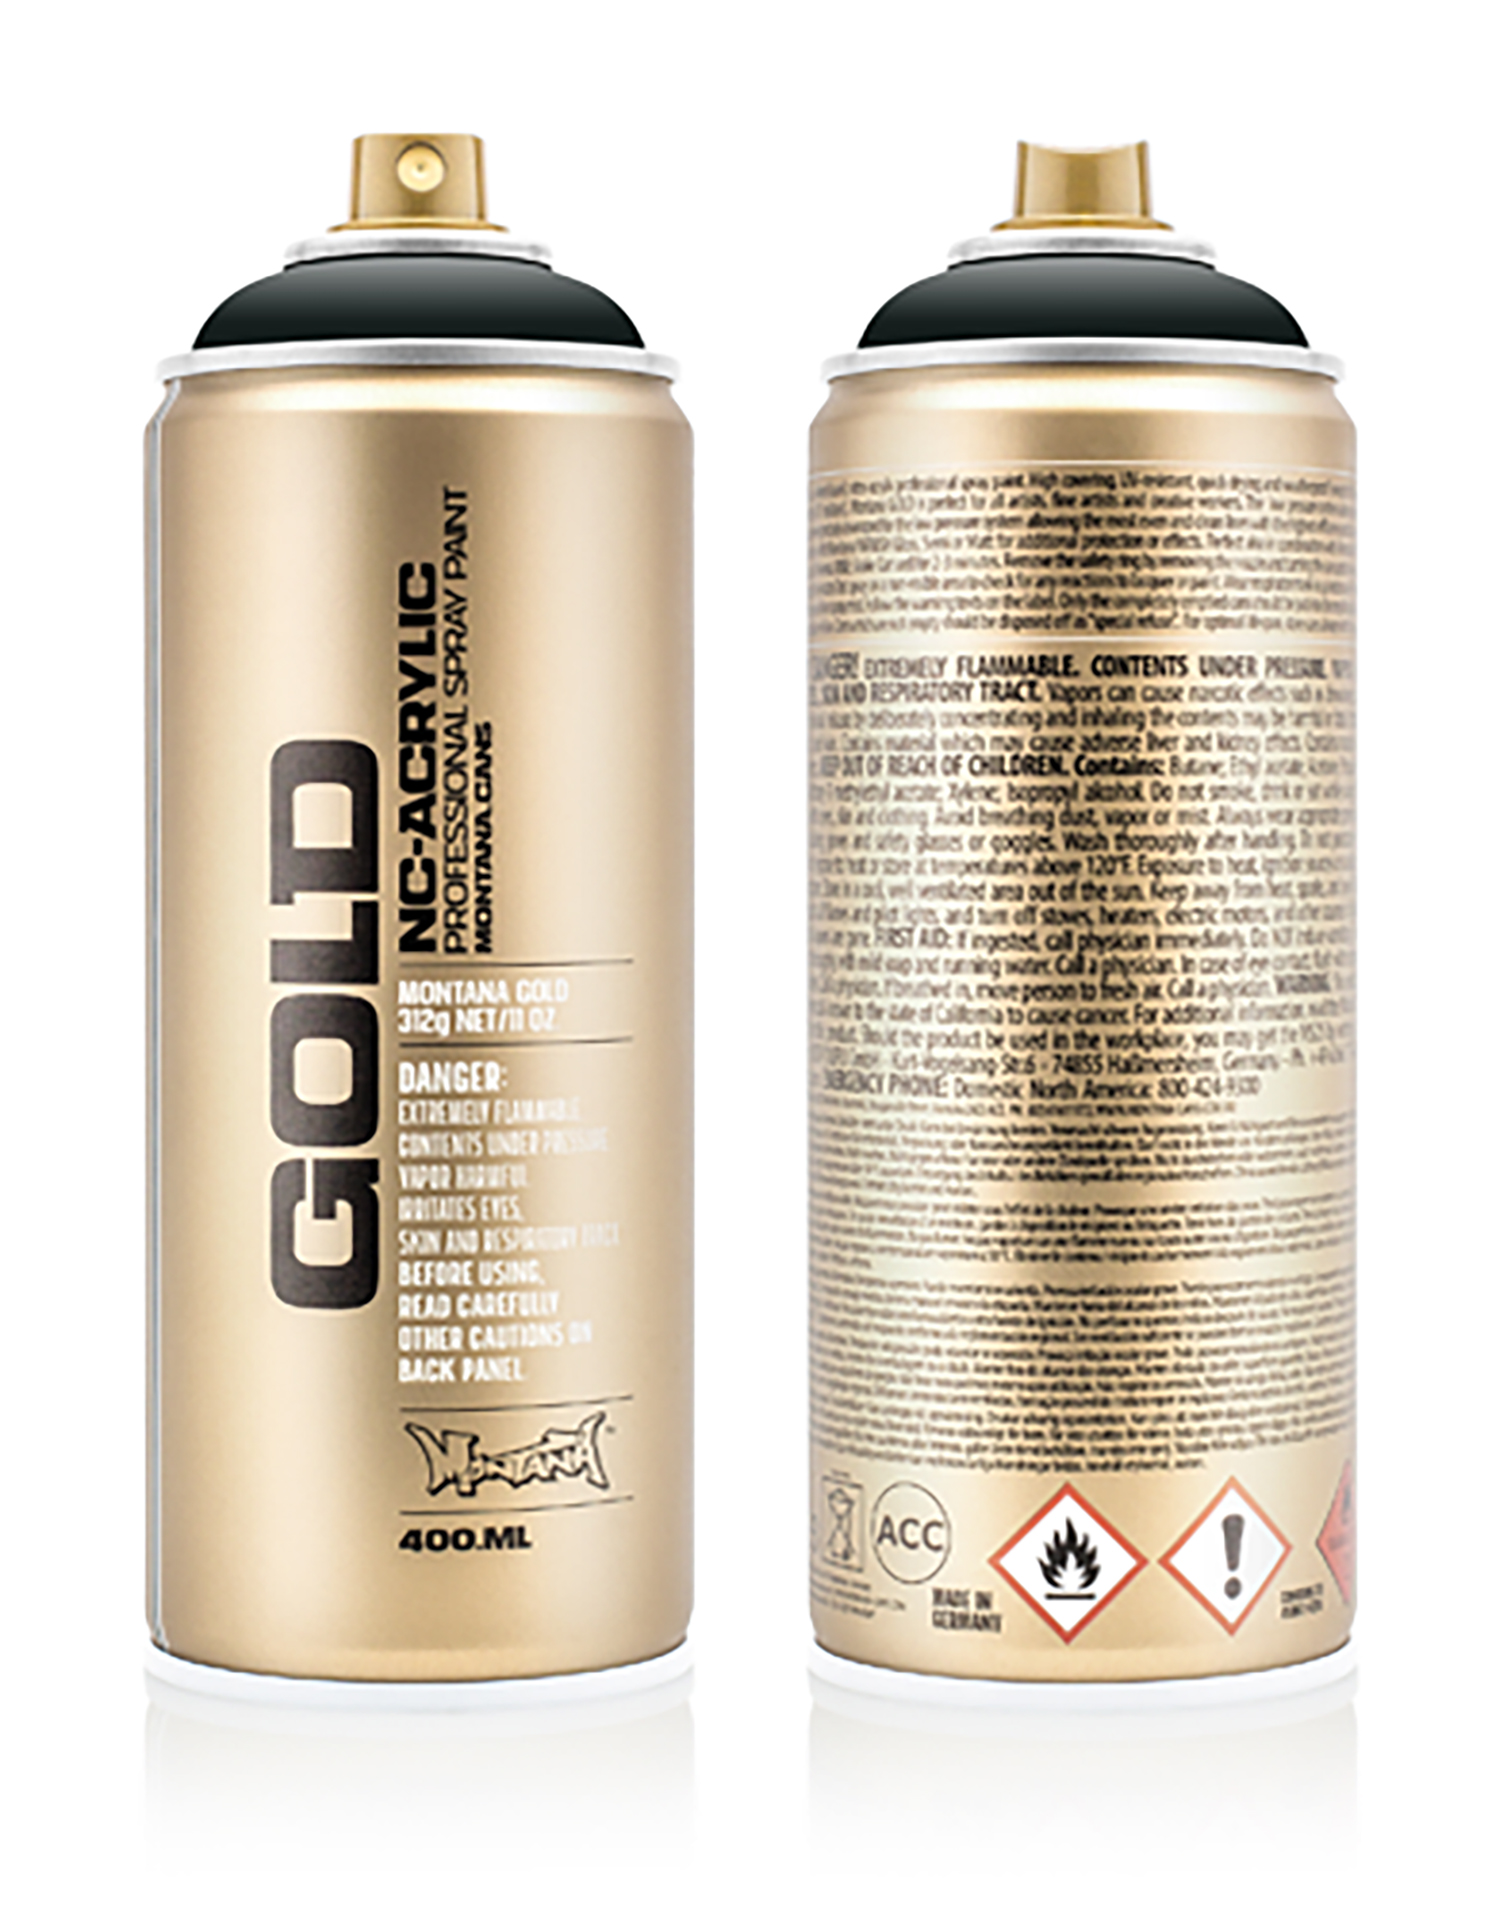 MONTANA-GOLD-SPRAY-400ML-G-8145